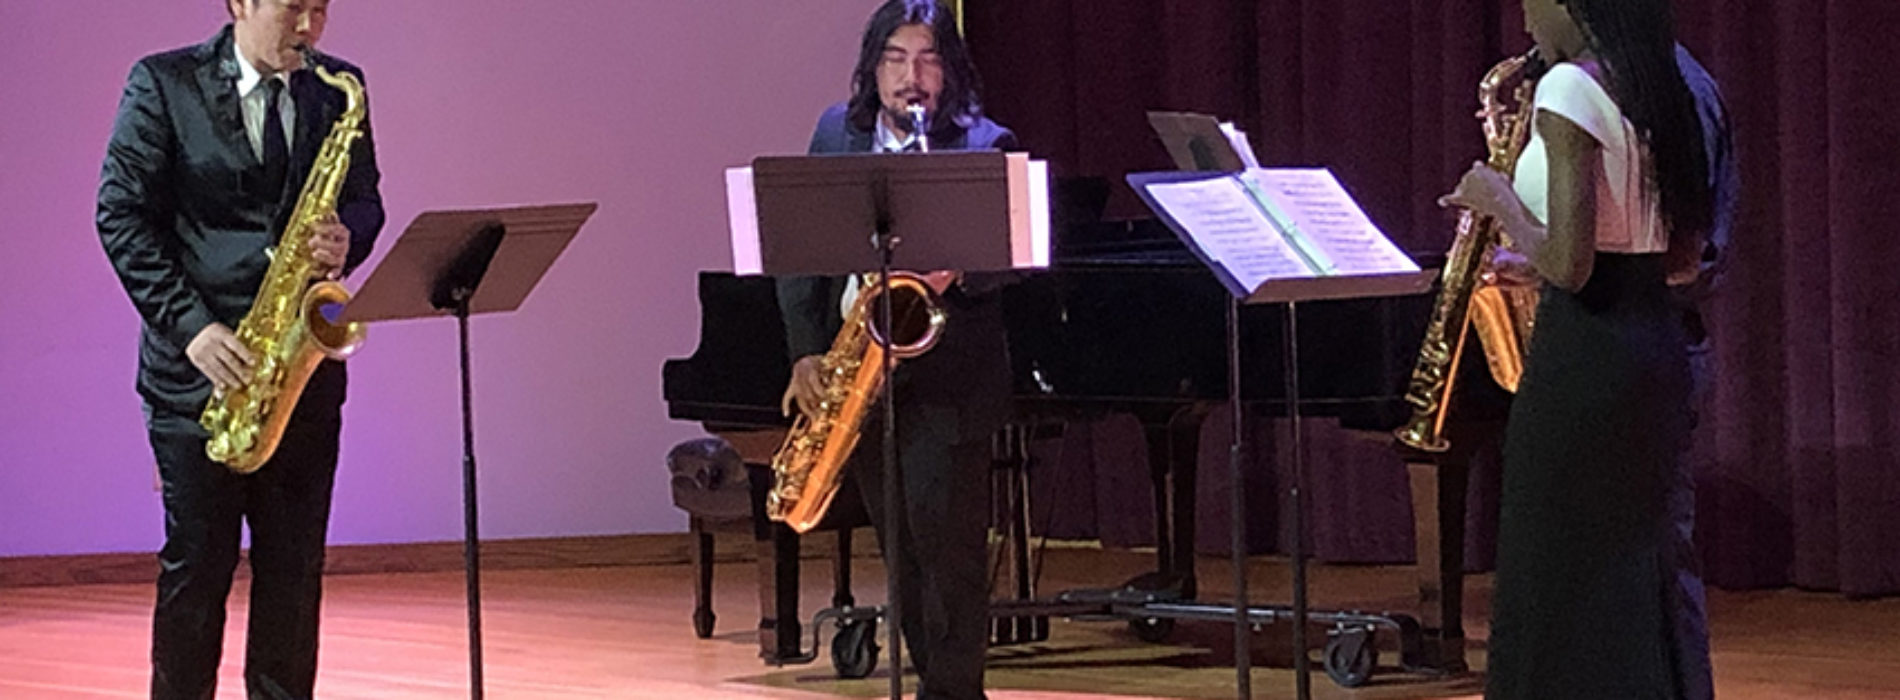 Music Department Trains and Equips Students to Be Professional Musicians